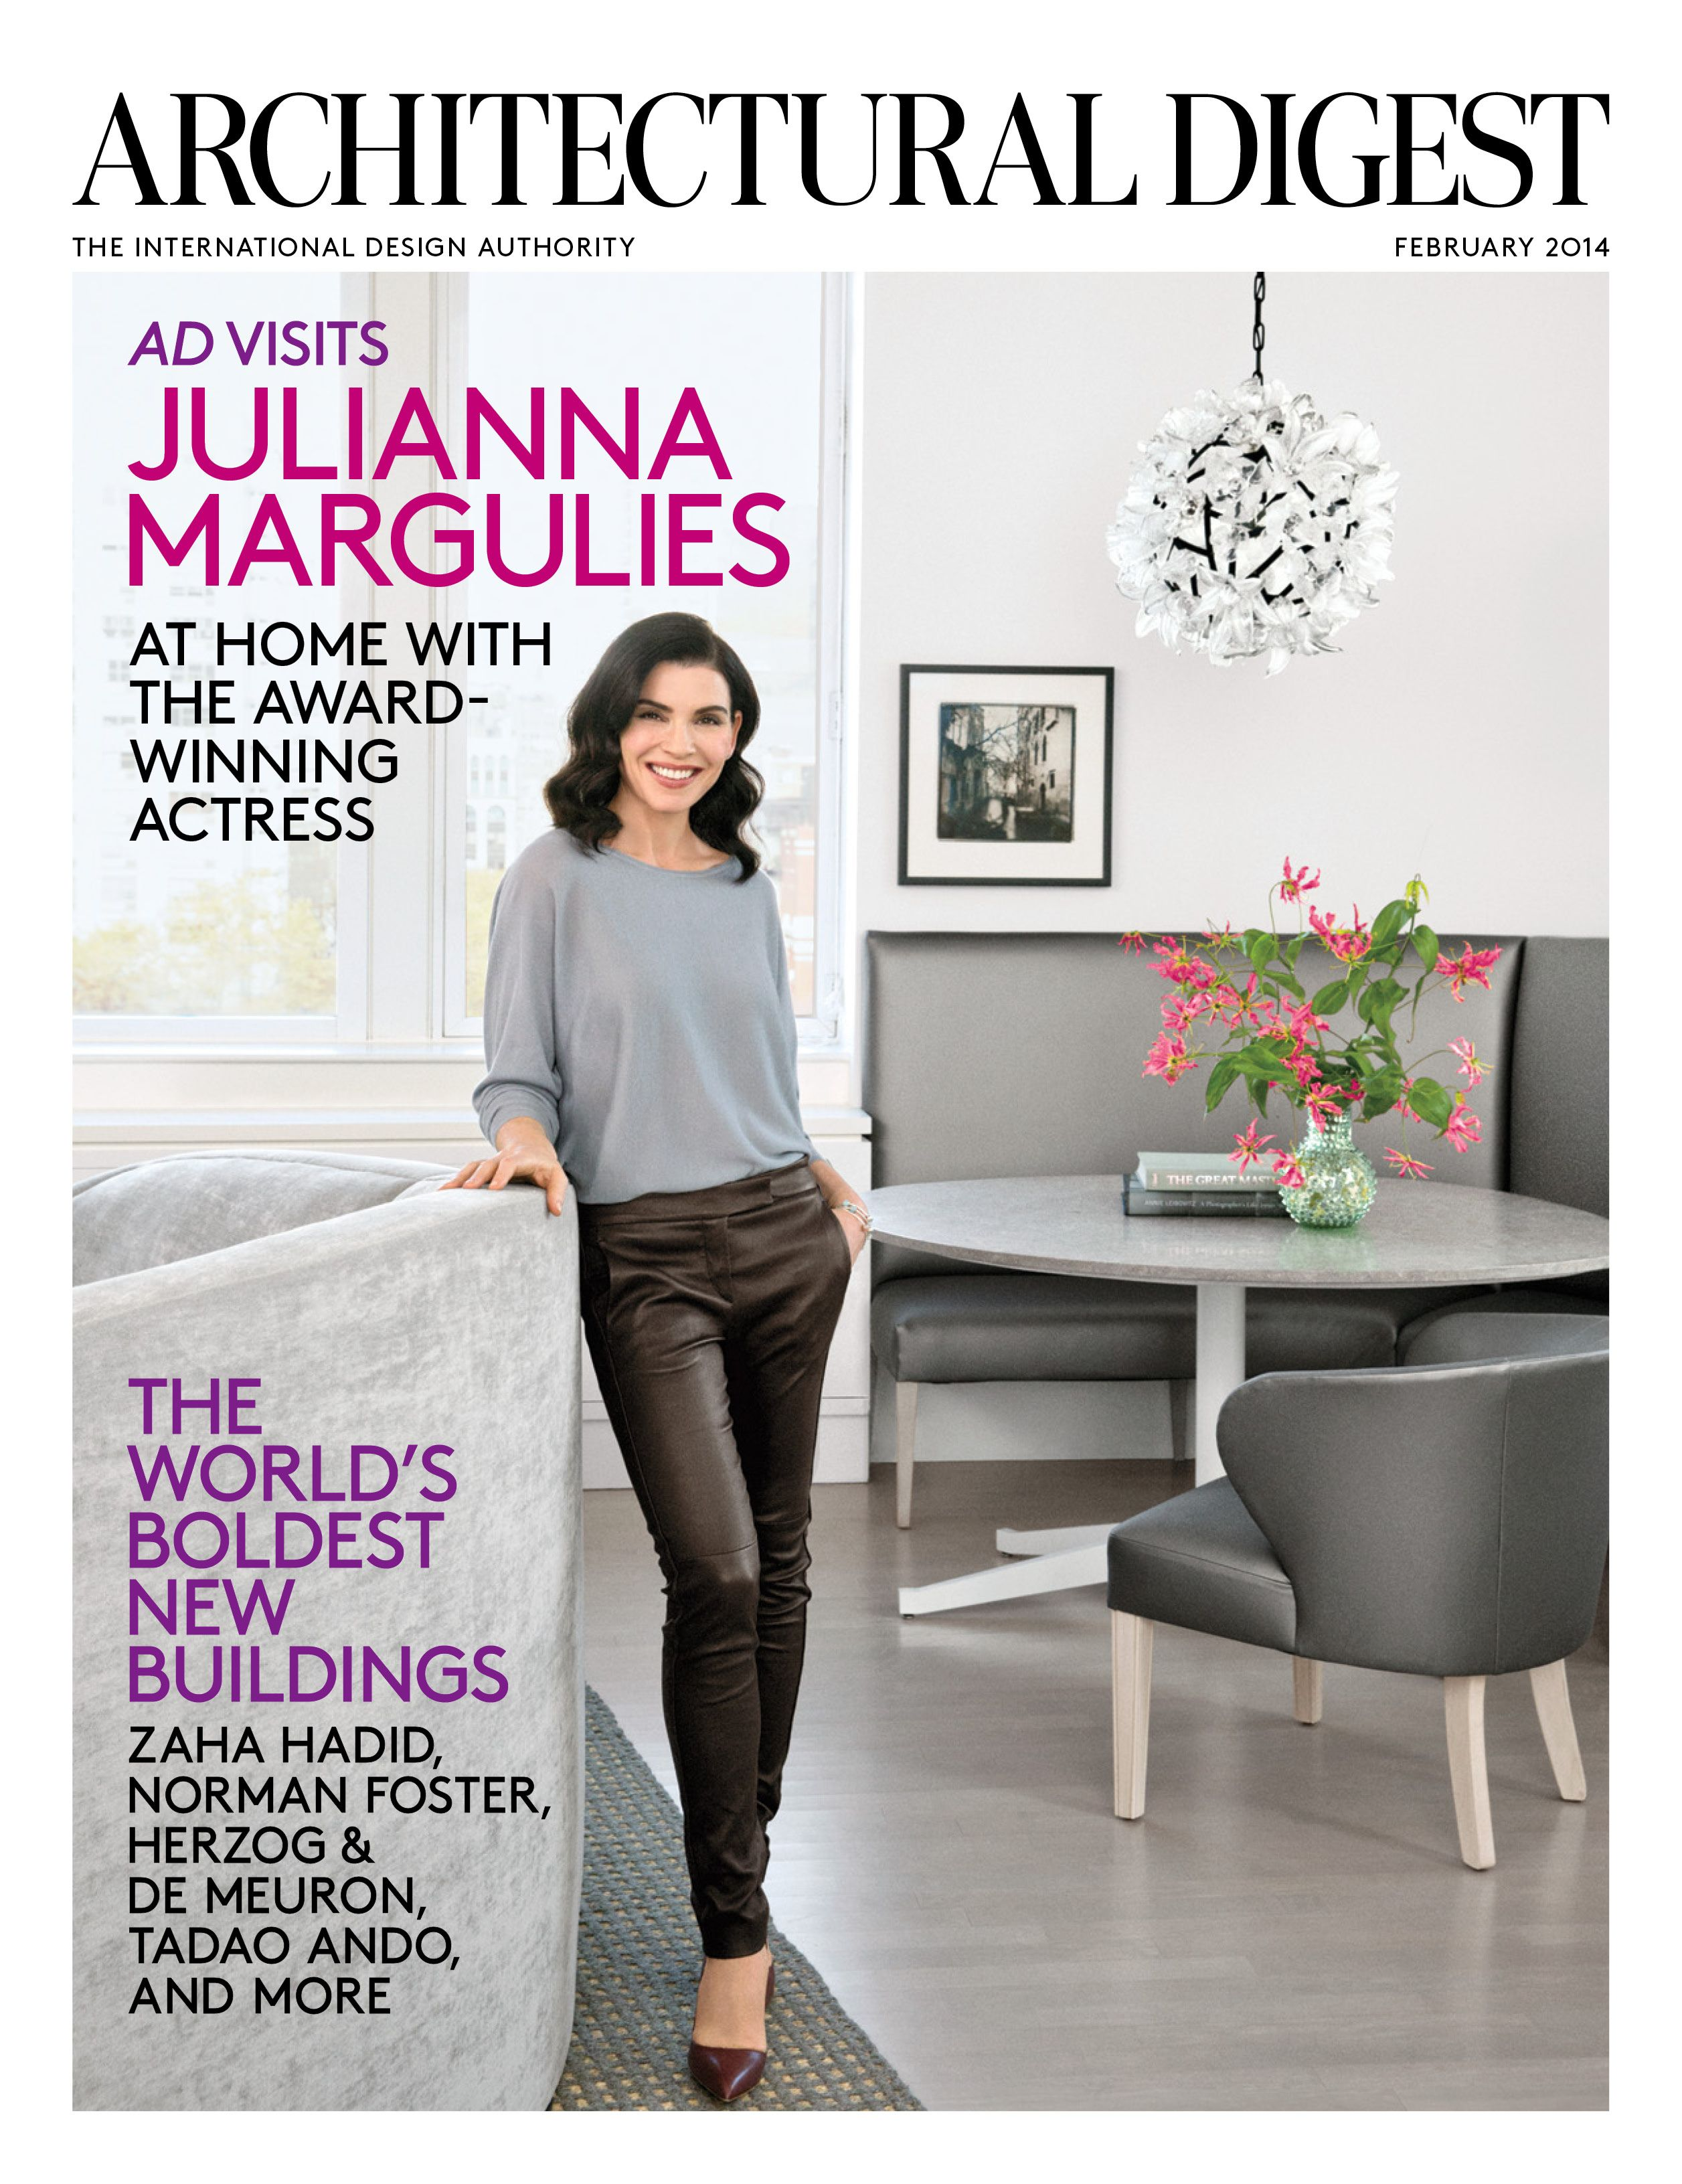 Image Result For Architectural Digest Magazine Cover February 2014